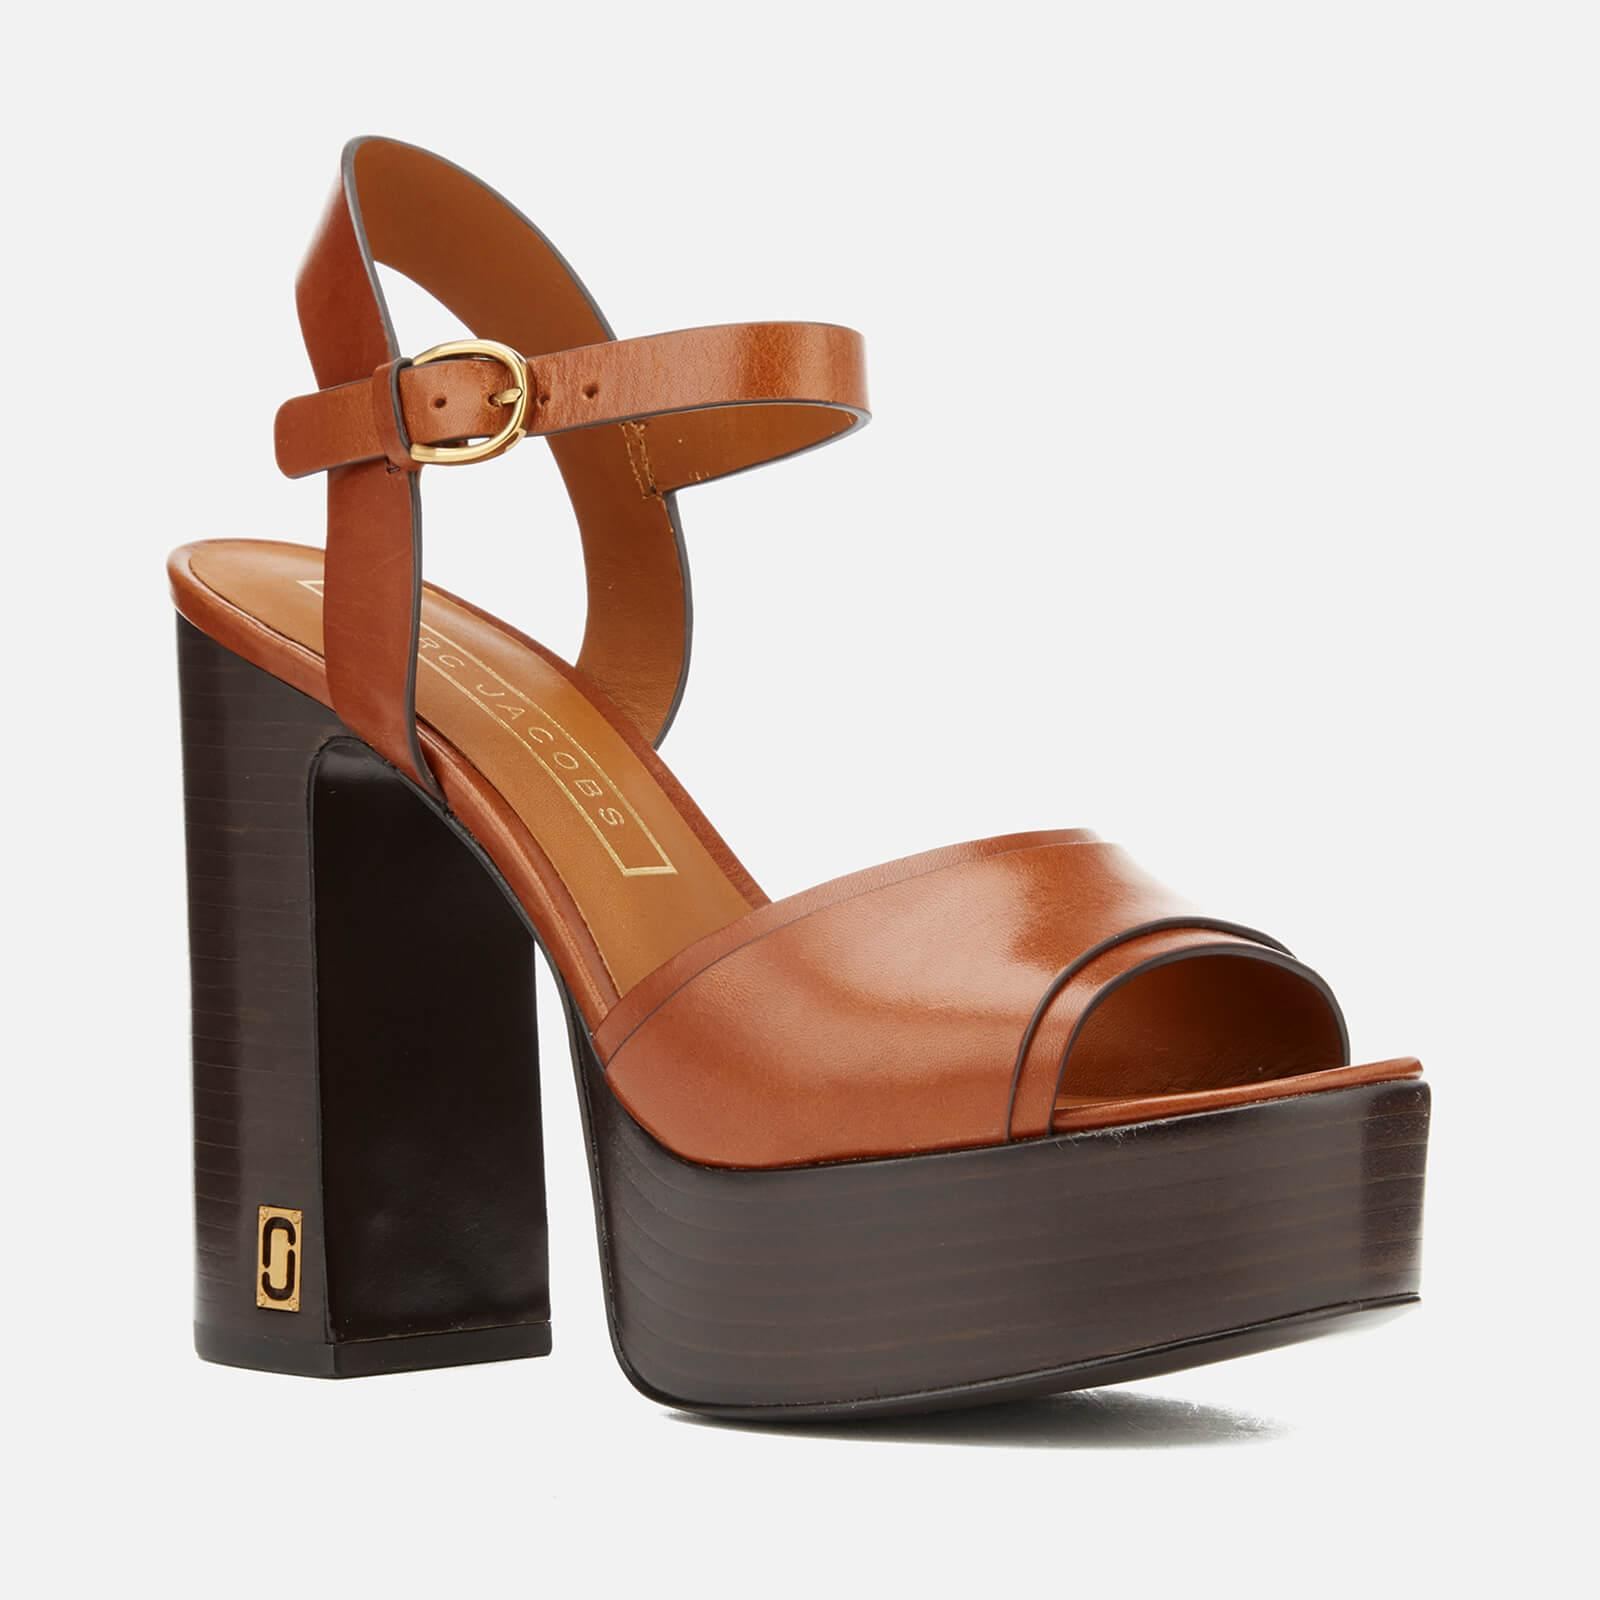 f465a6052a0e Marc Jacobs Lust Status Platform Sandals in Brown - Save 70% - Lyst